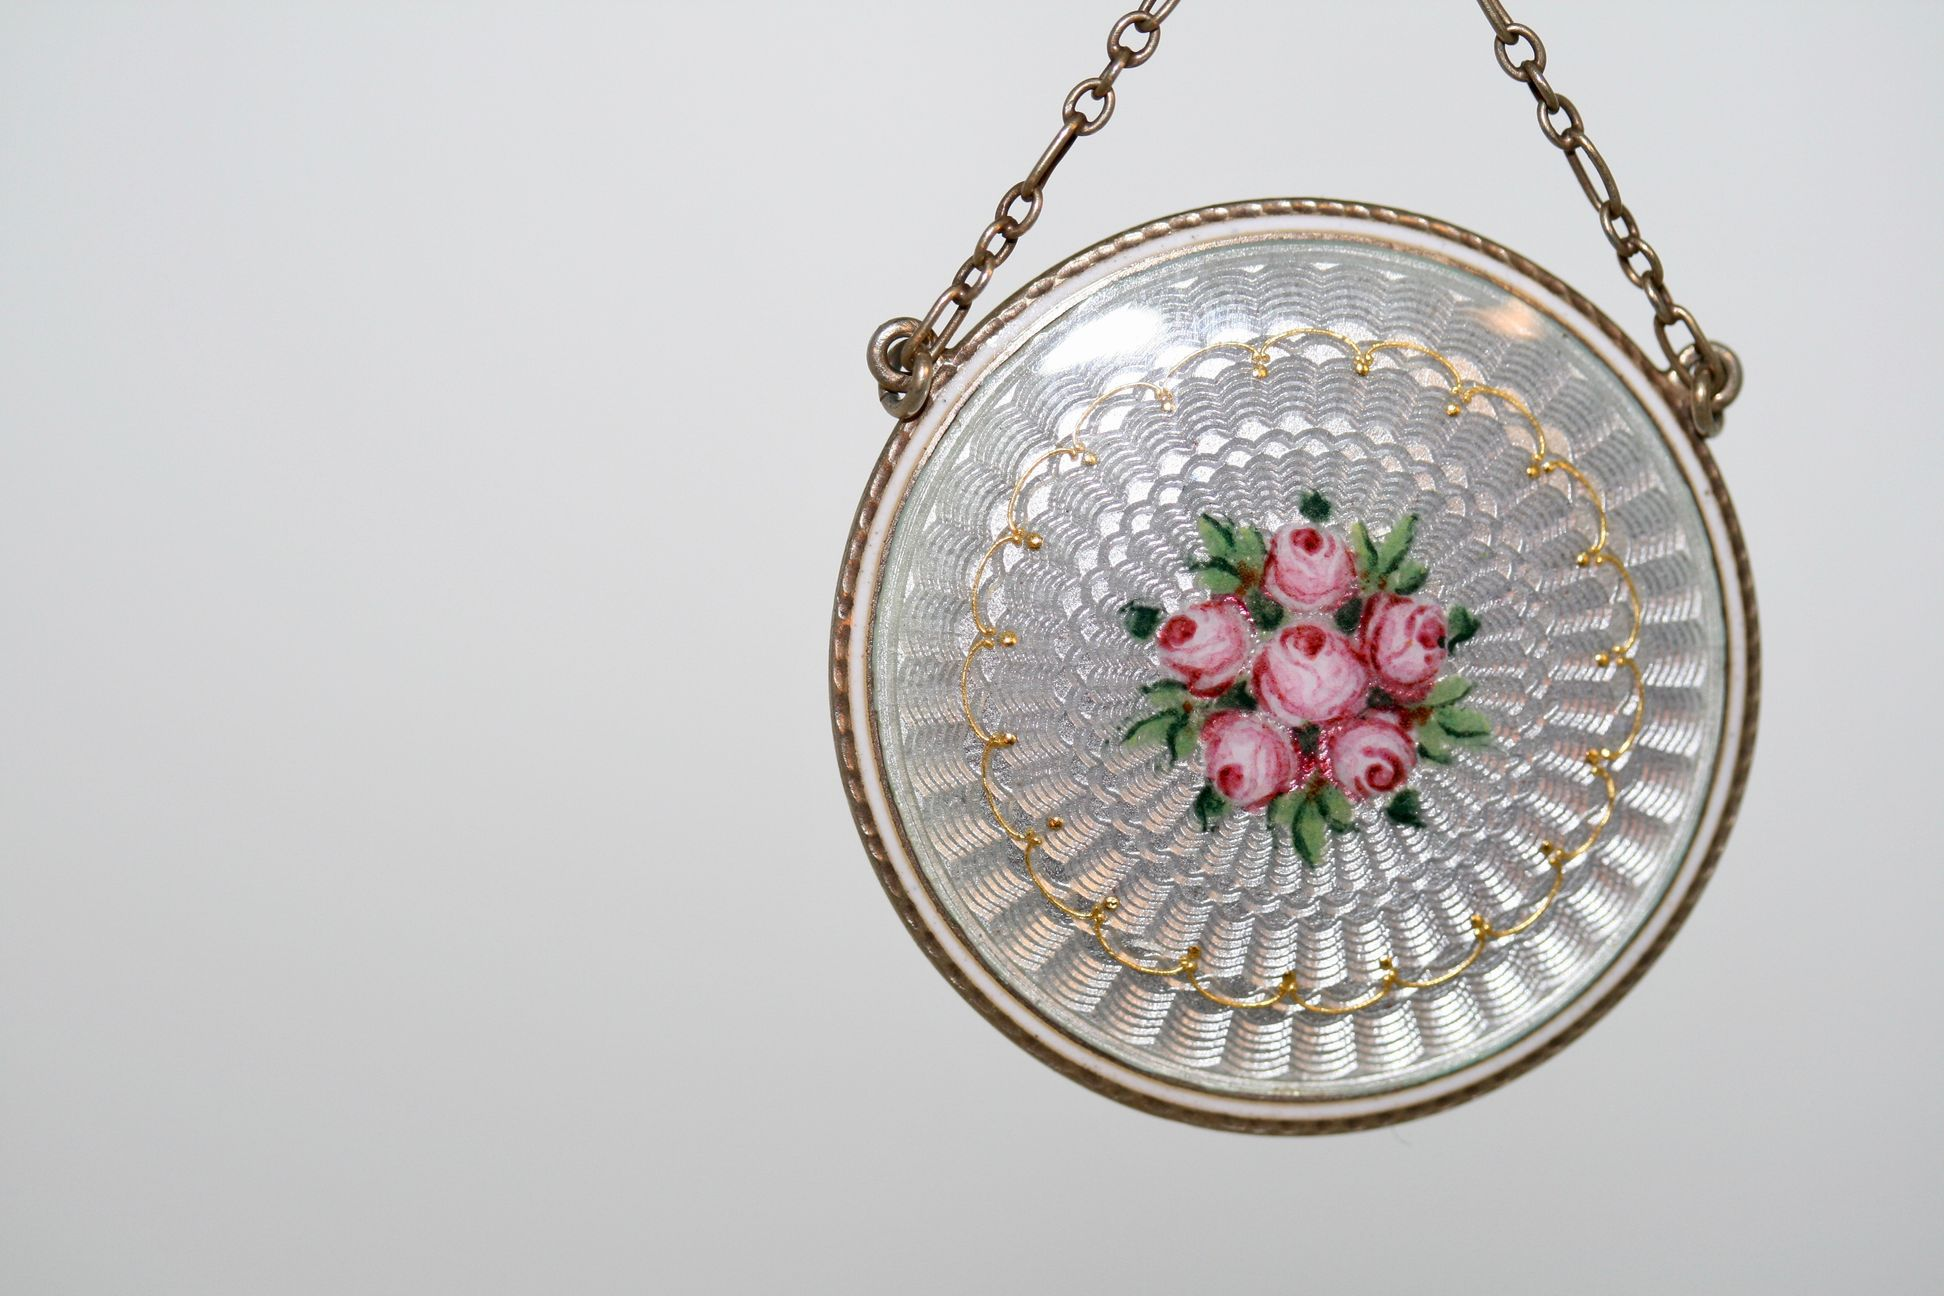 Edwardian Floral Enamelled Necklace